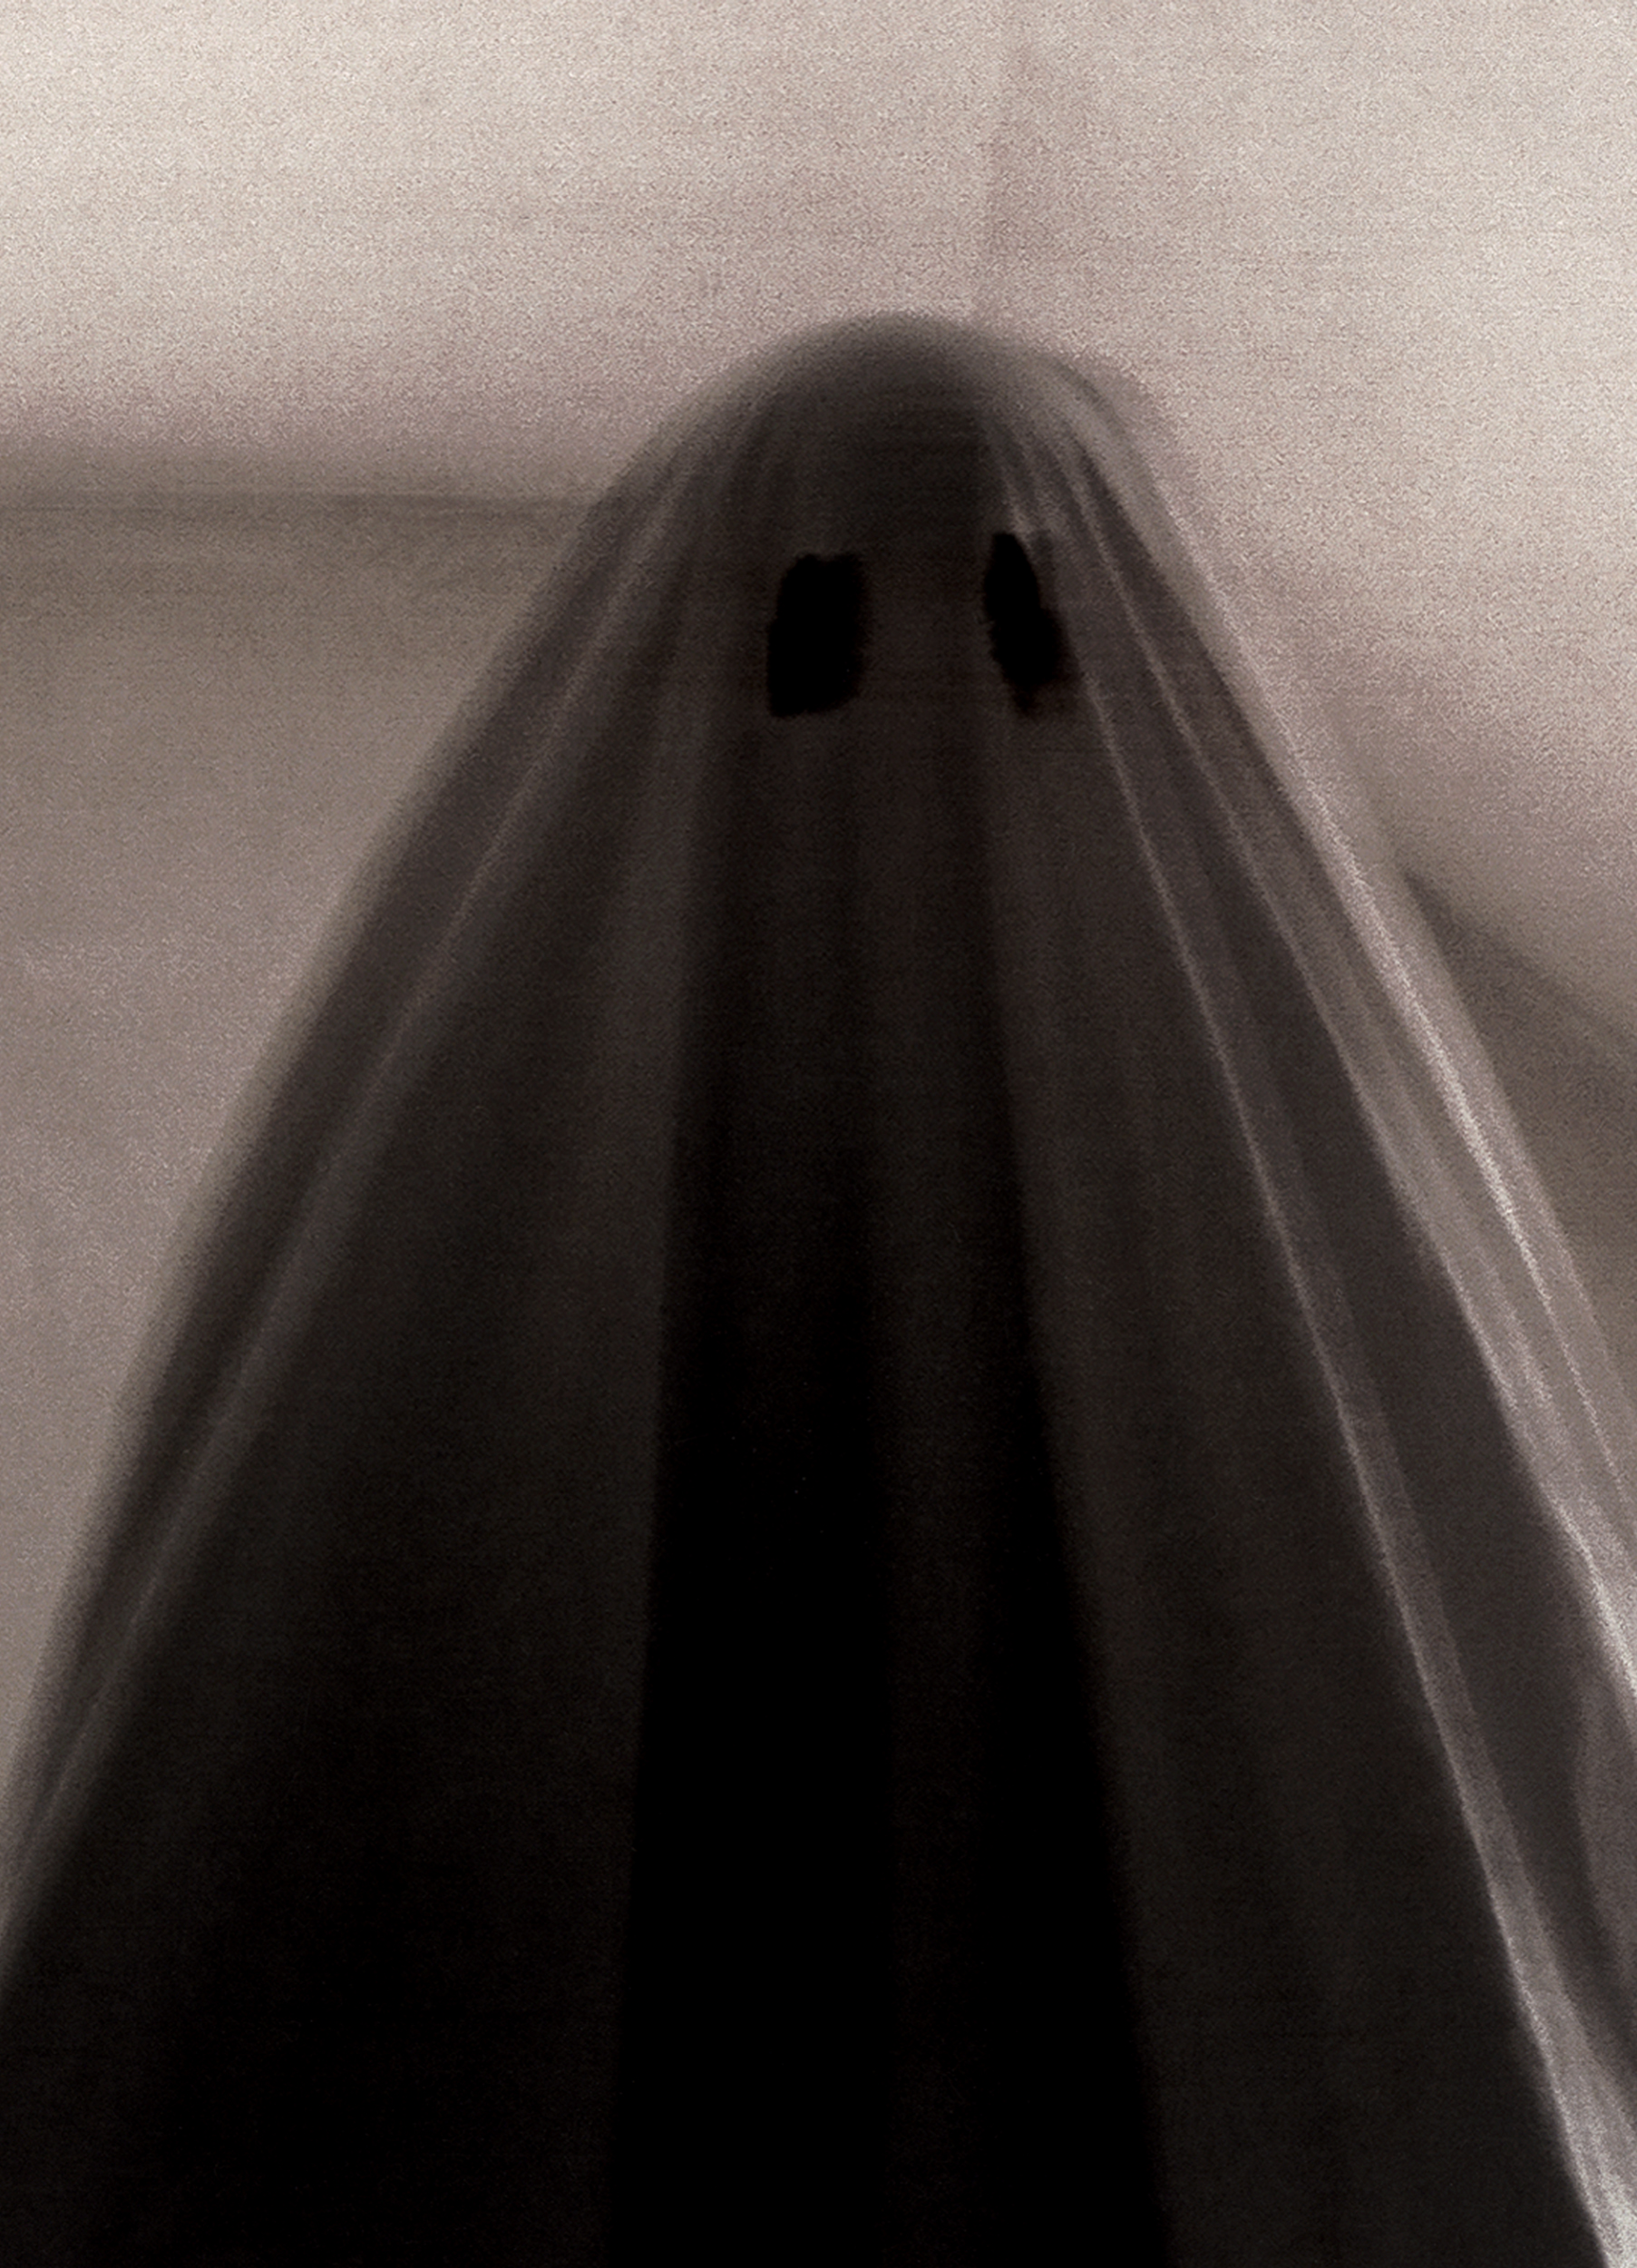 Ghost, photograph by Wouter van Riessen